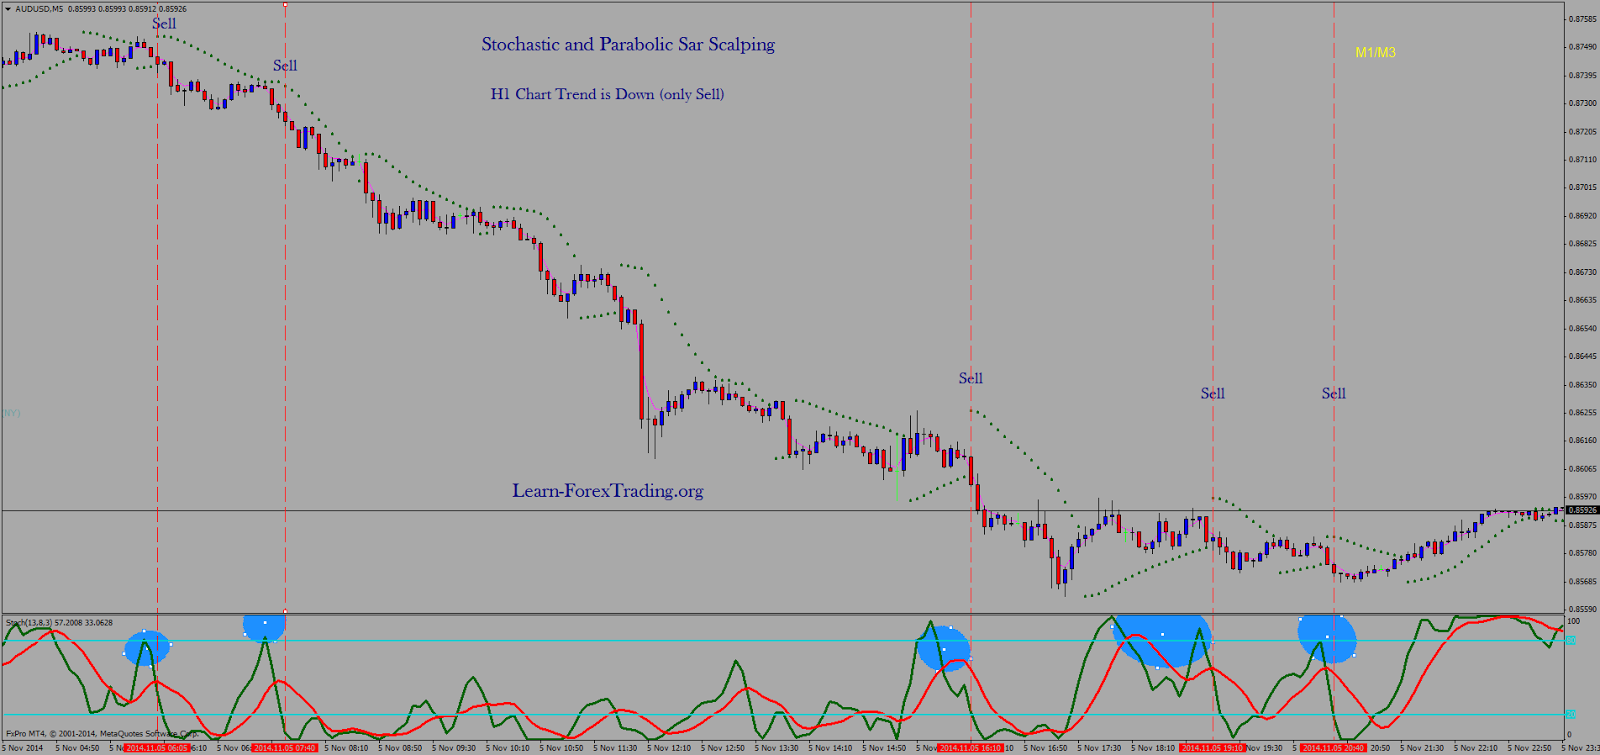 Stochastic and Parabolic Sar Scalping